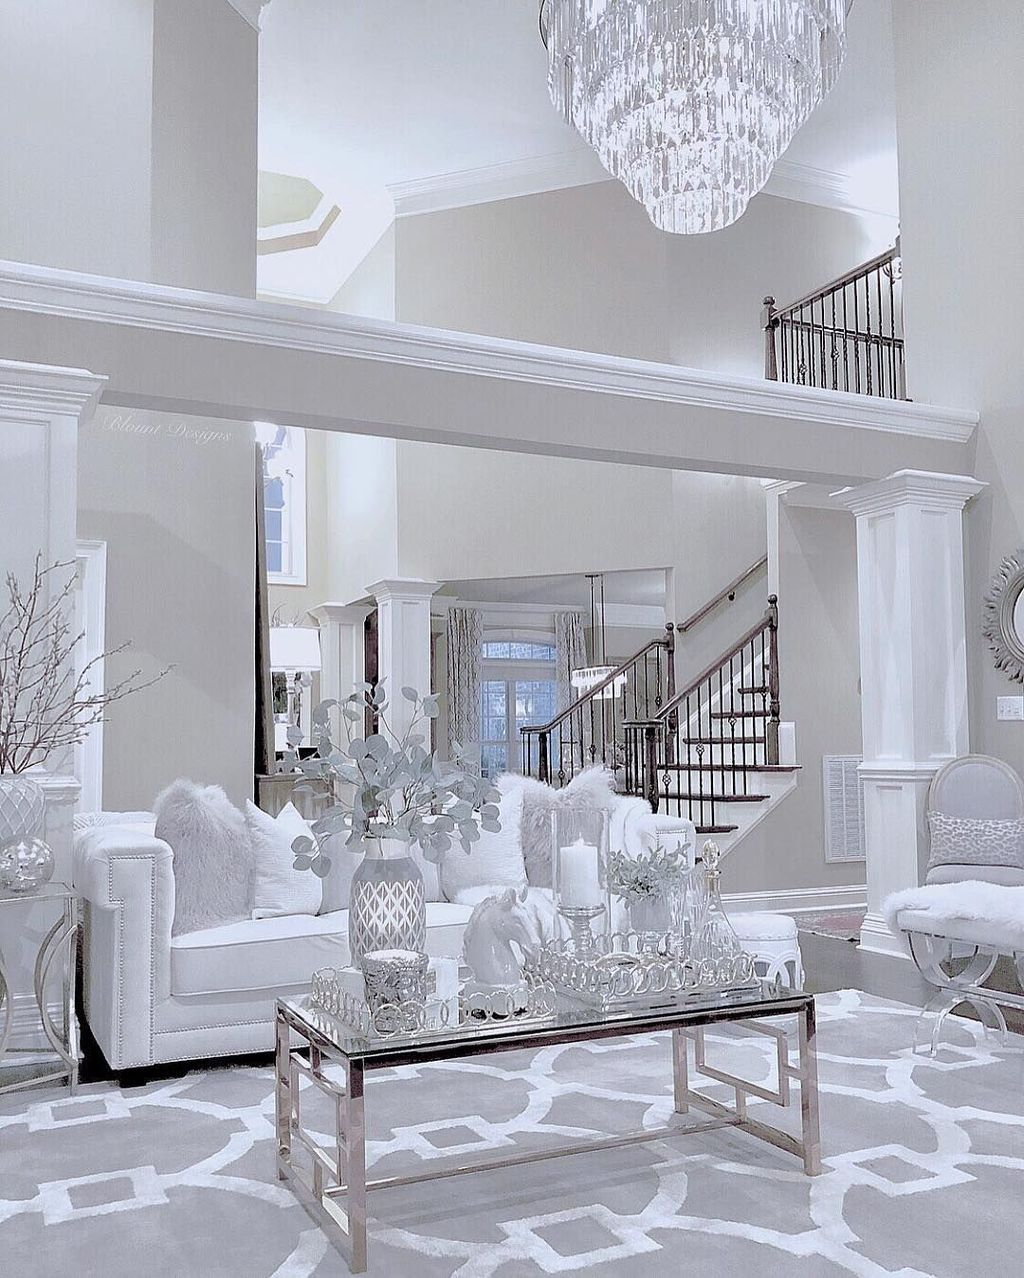 Cool 20 Luxurious And Elegant Living Room Design Ideas. More at ...